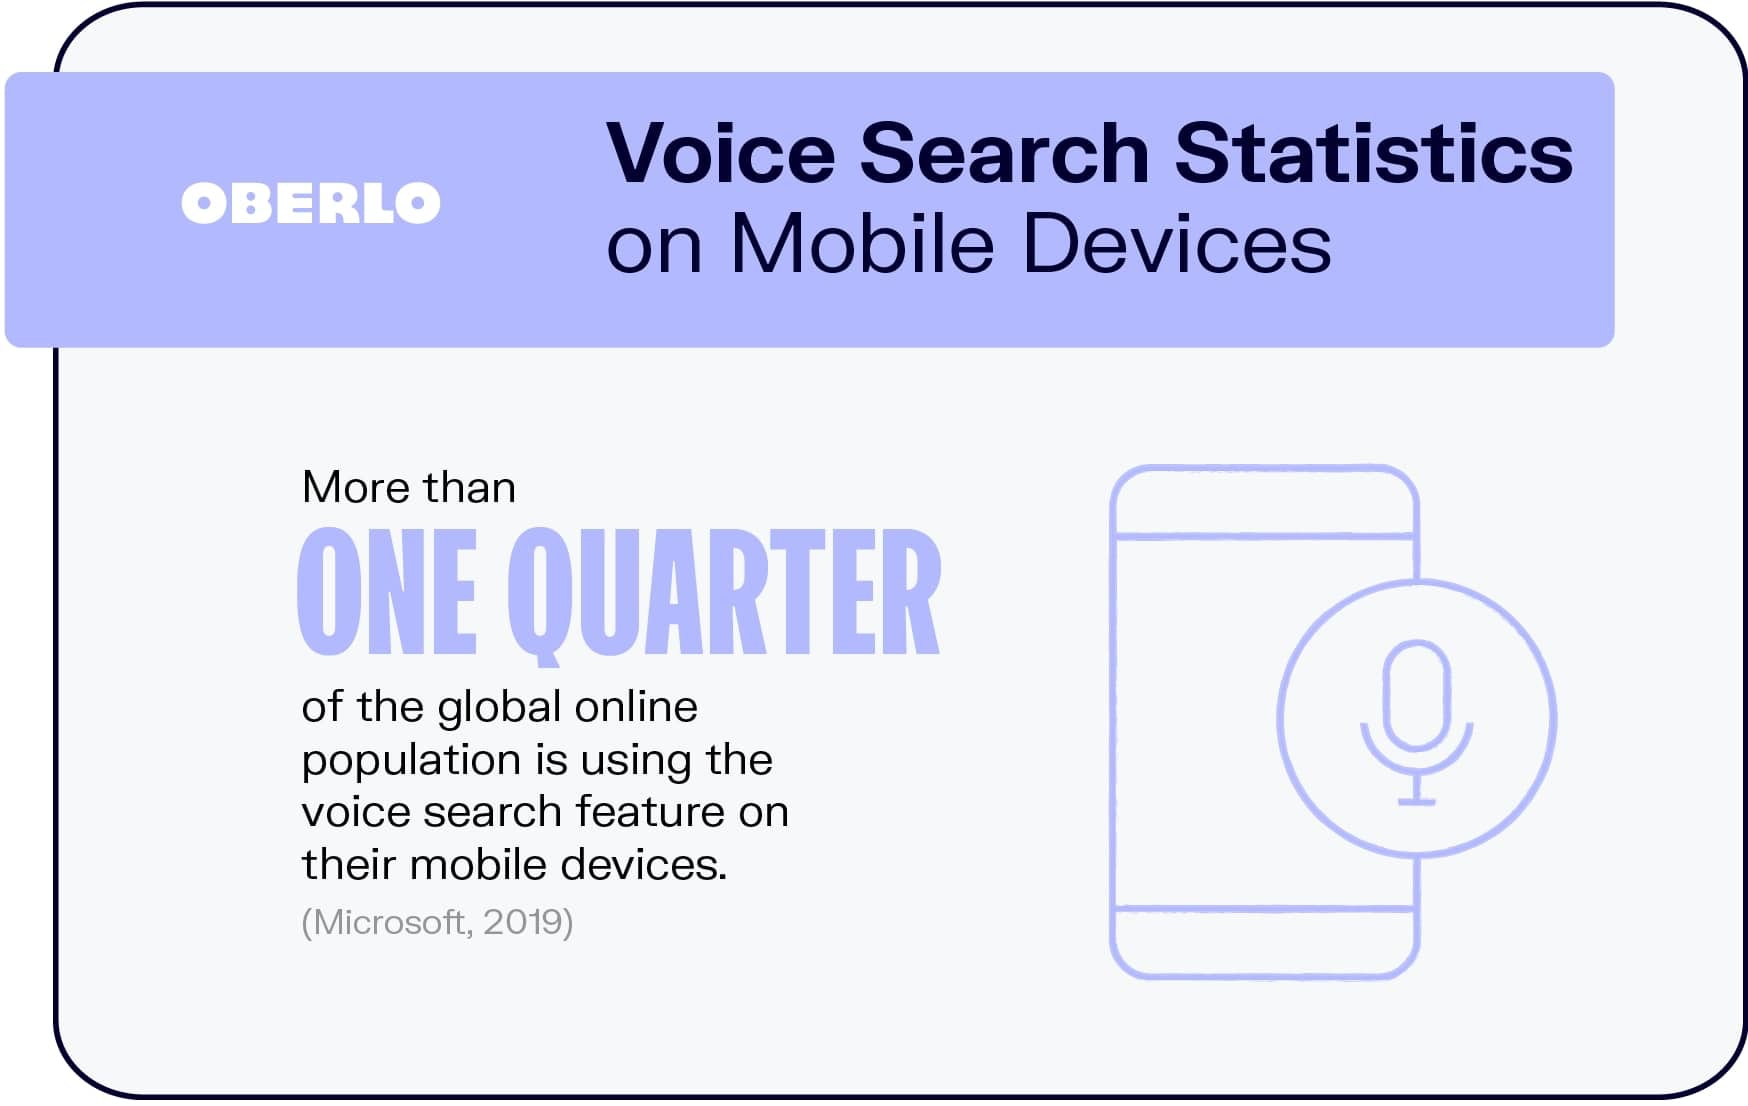 Voice Search Statistics on Mobile Devices